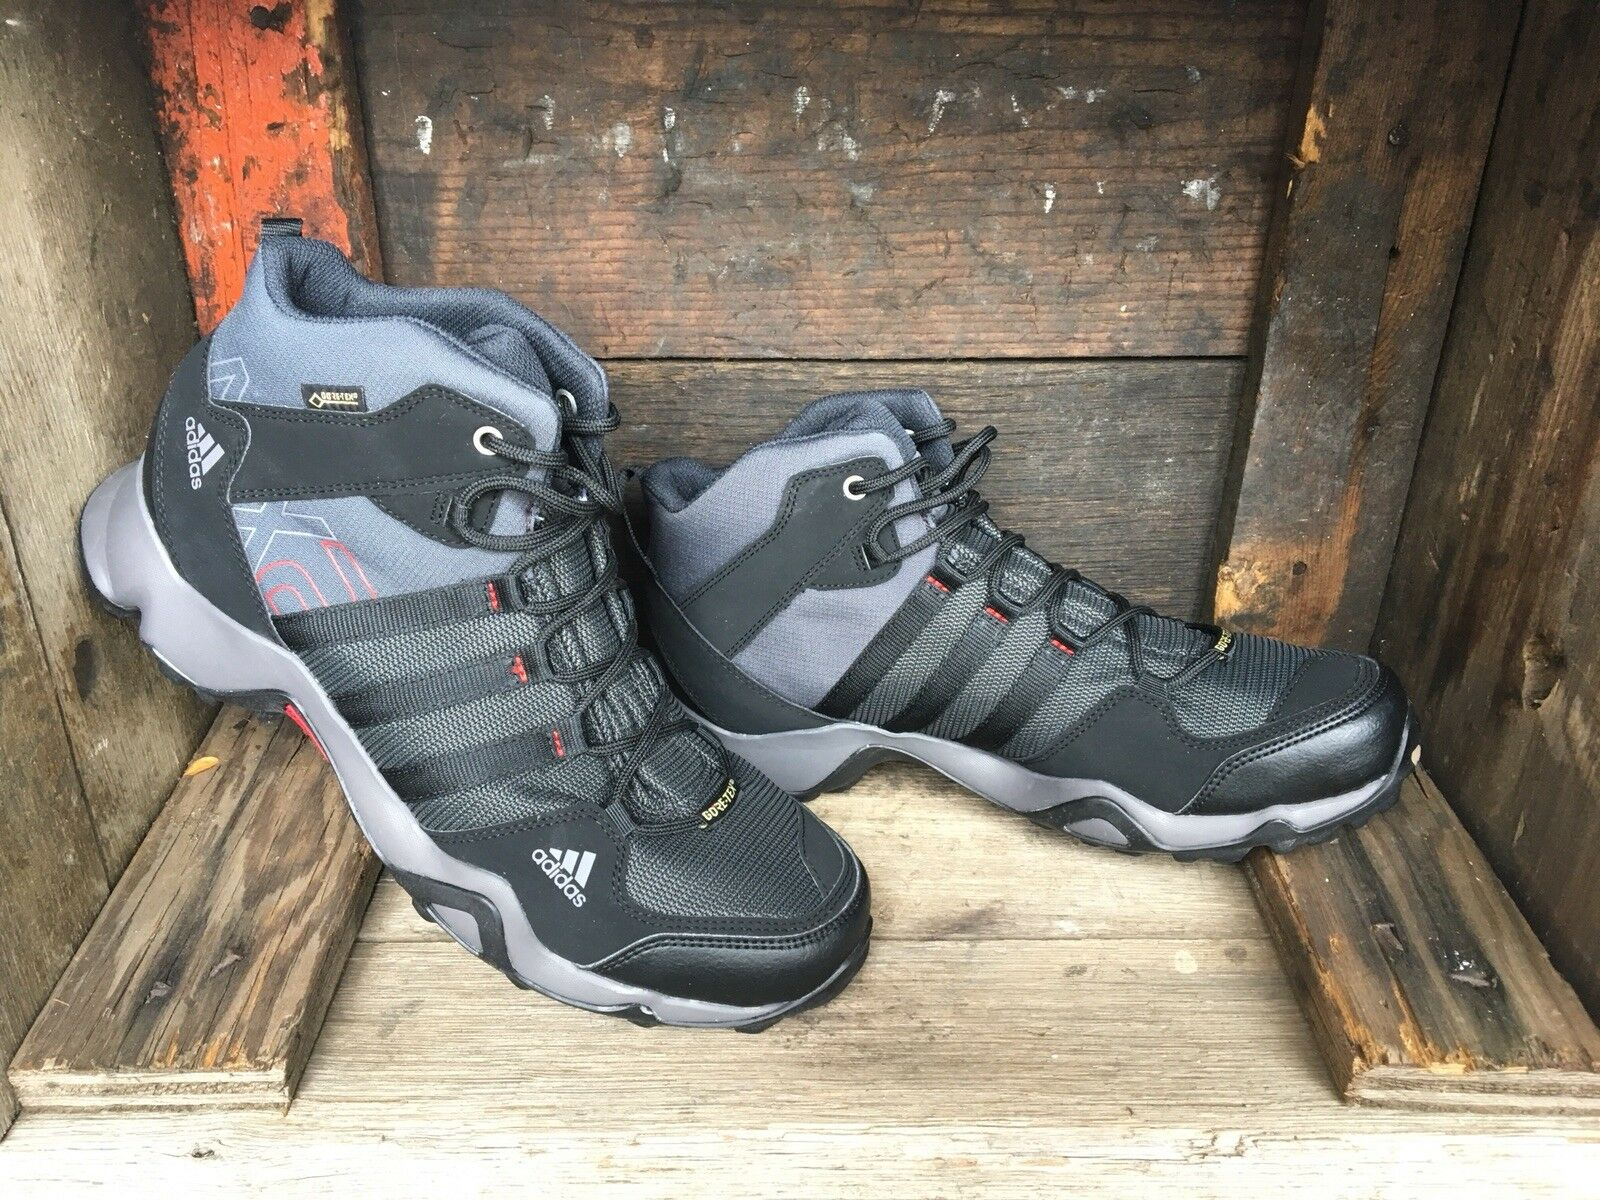 Adidas Outdoor AX2 Mid GORE-TEX Hiking Boots Men Black US 8.5